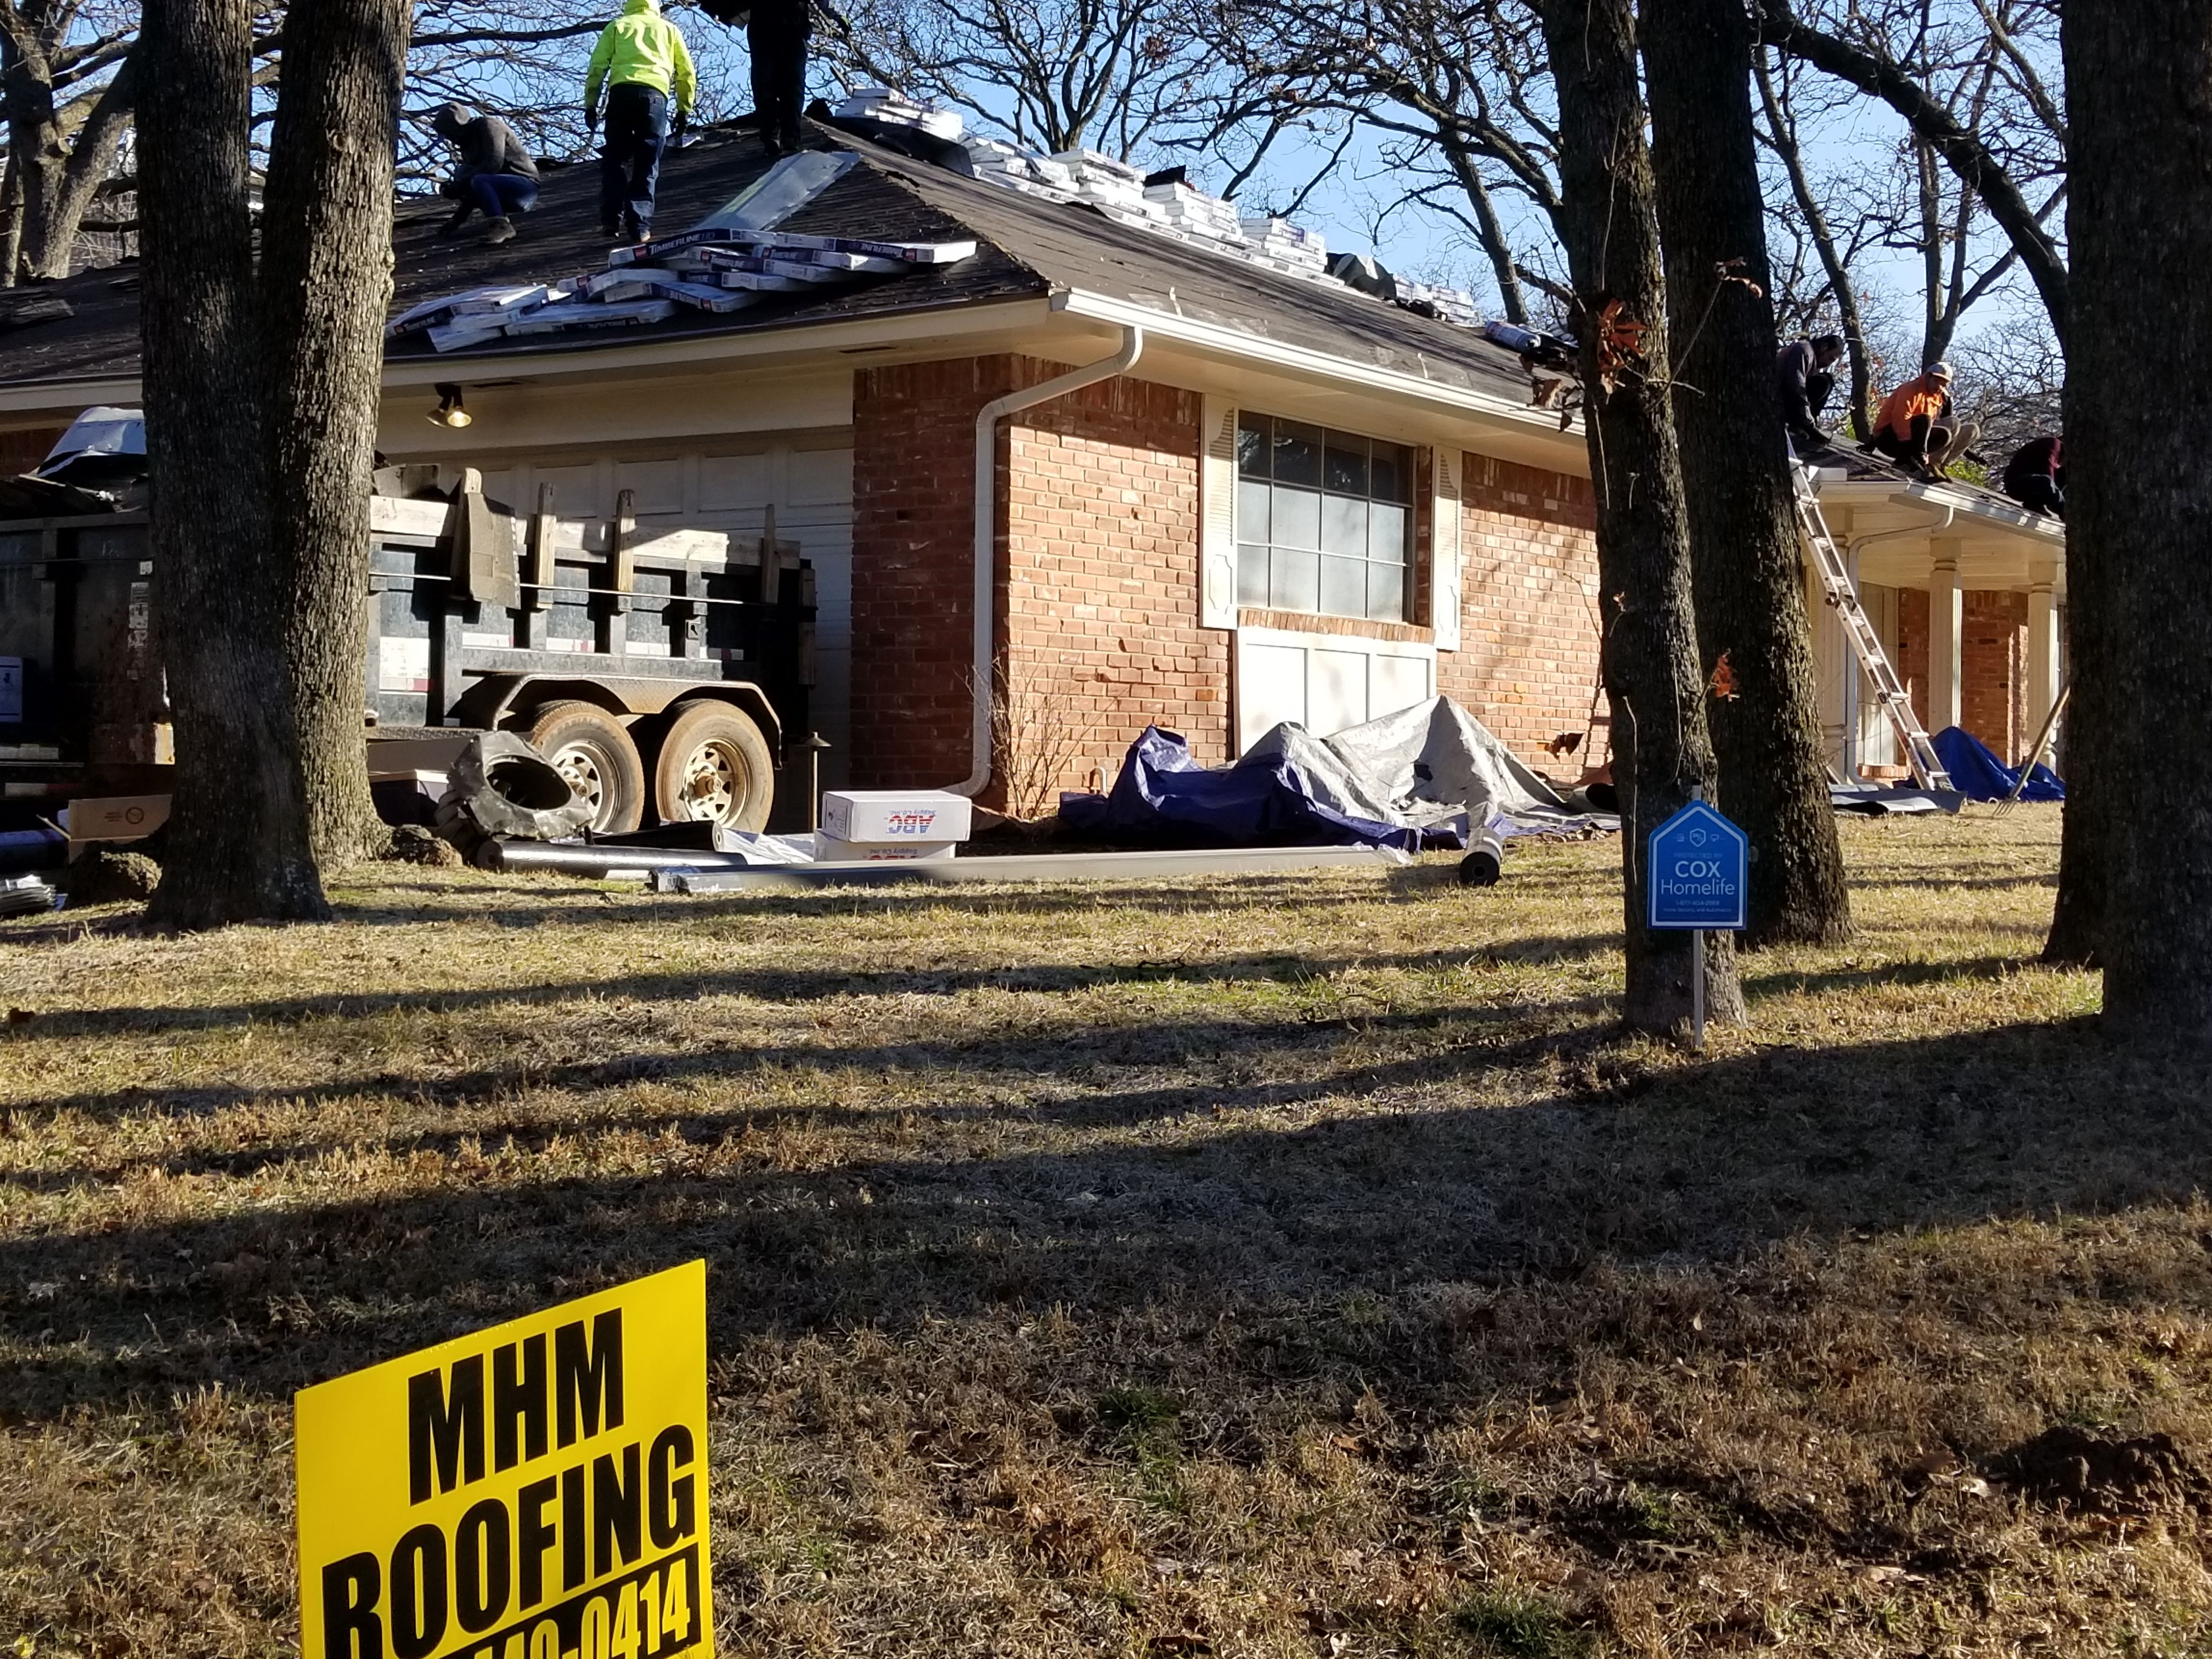 60 Square Roof In 2020 Getting Things Done Roofing Roof